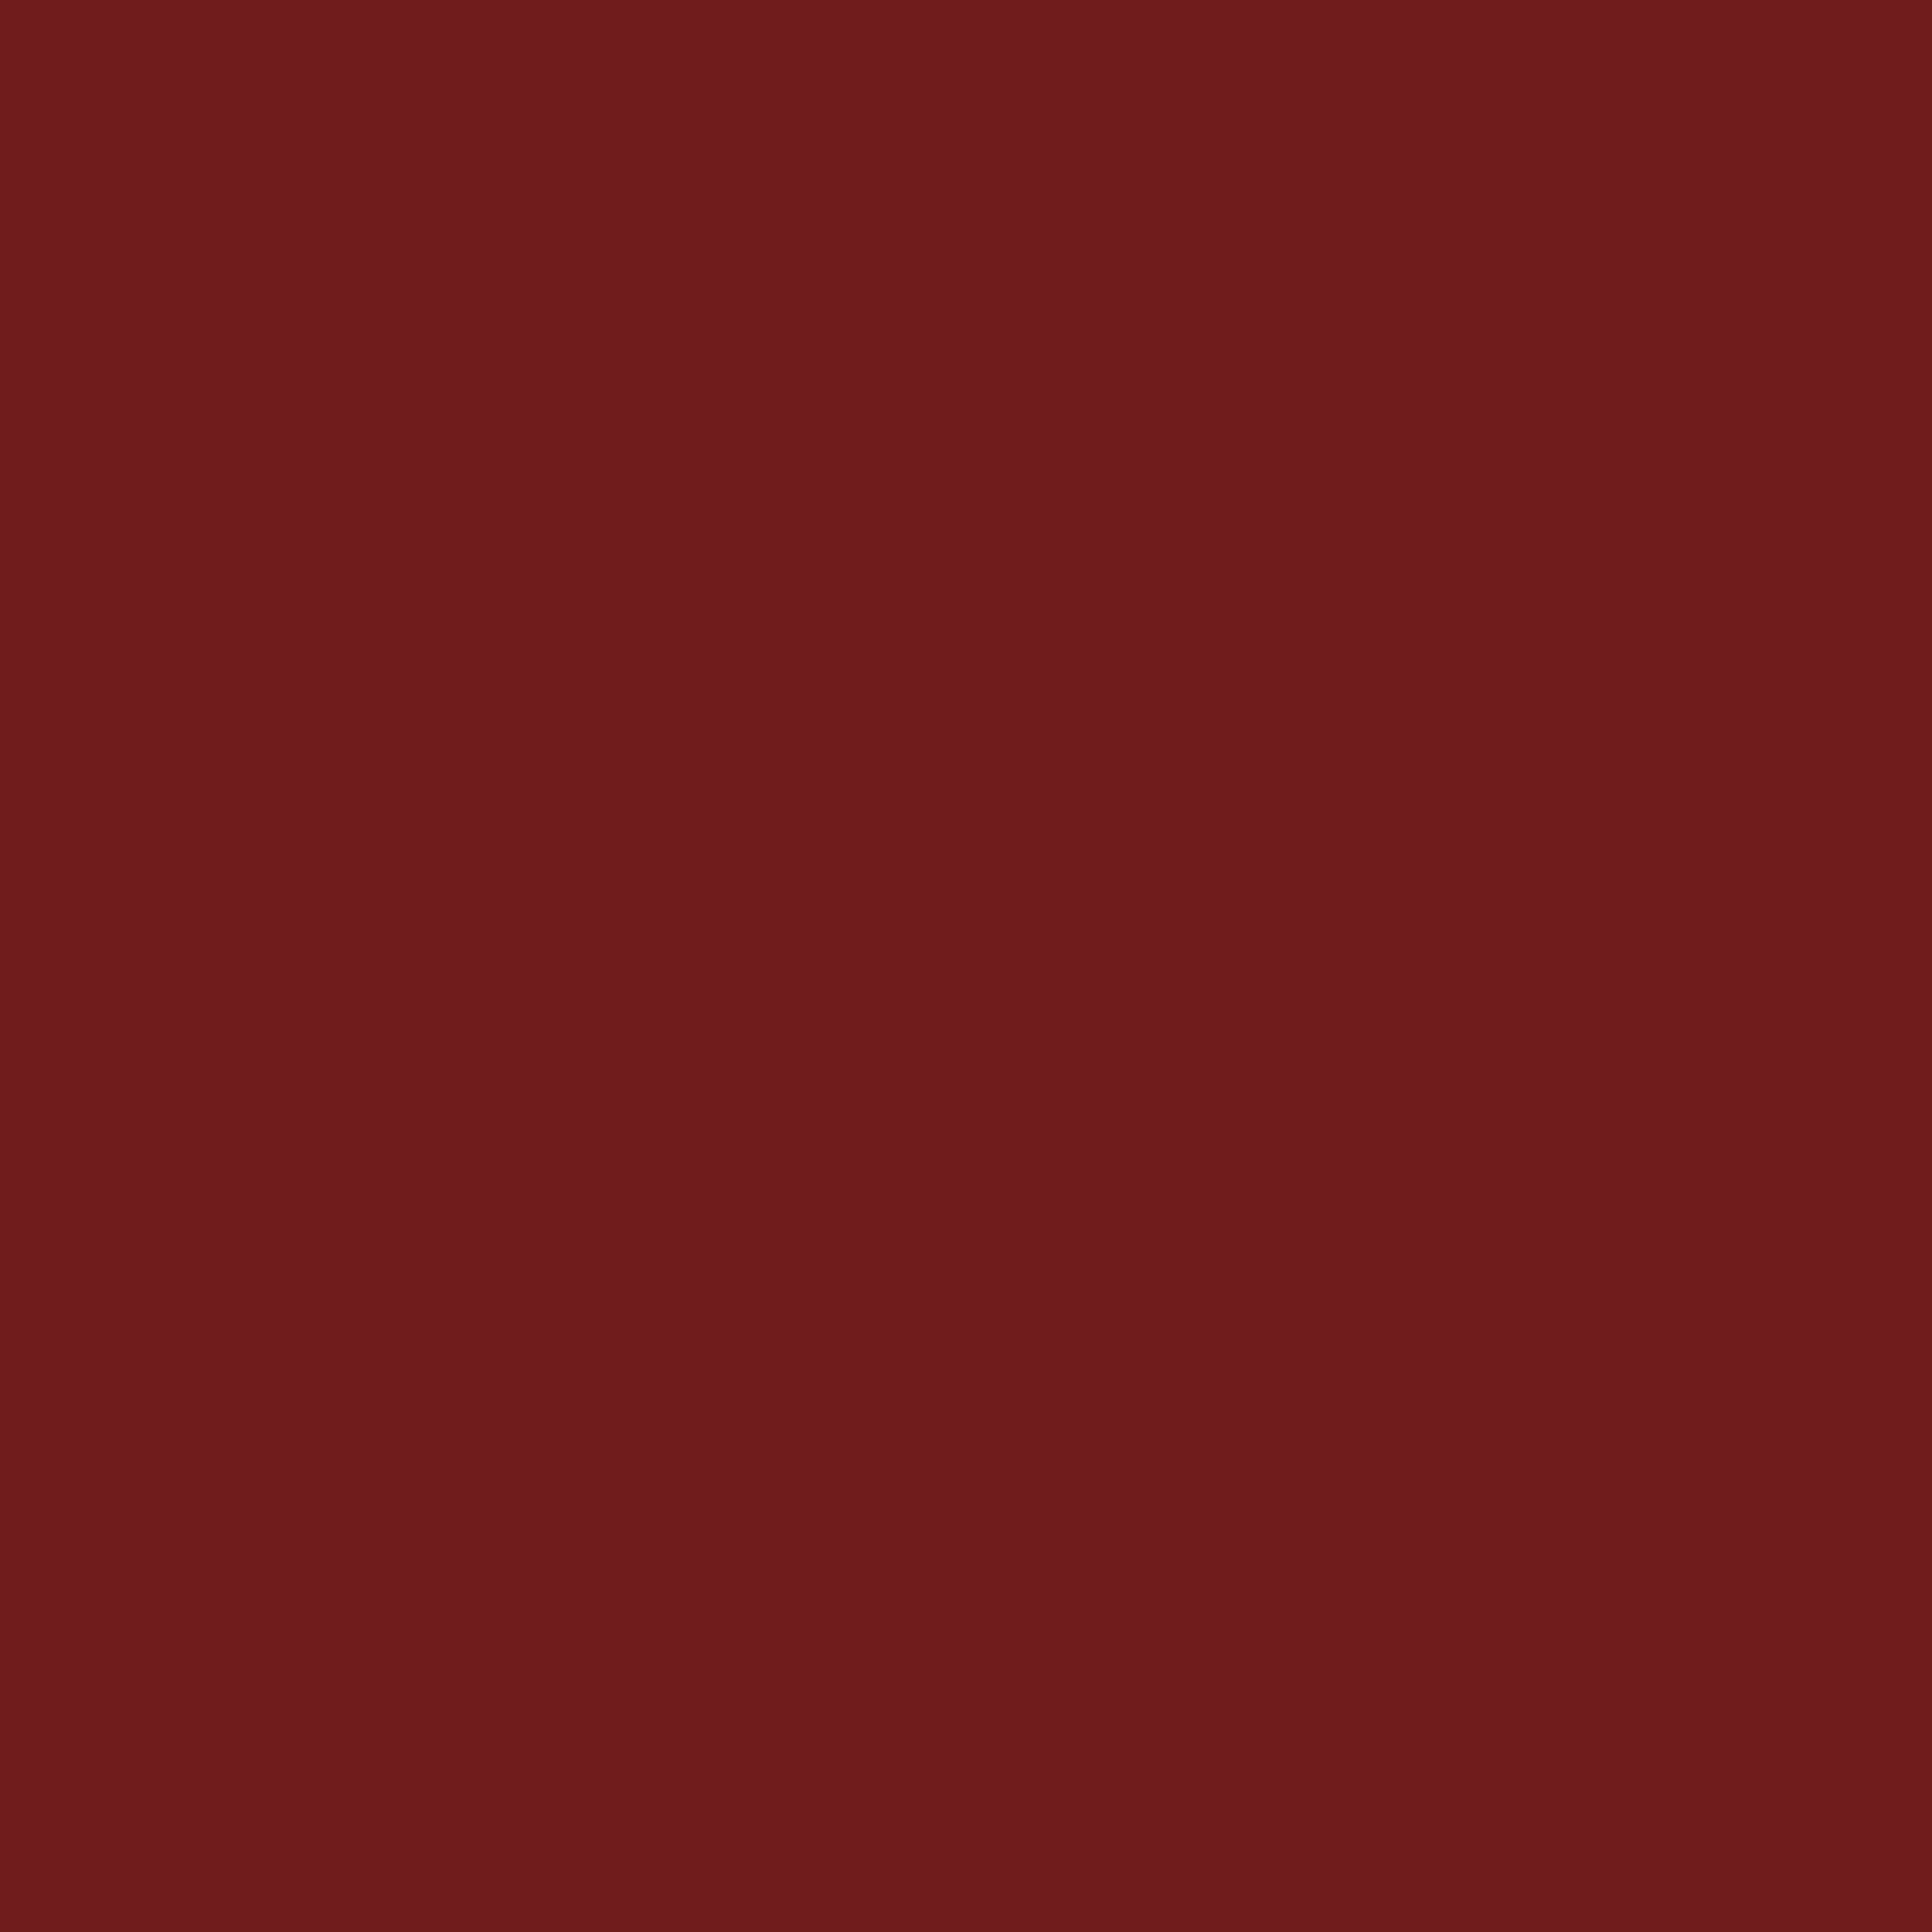 3600x3600 Prune Solid Color Background